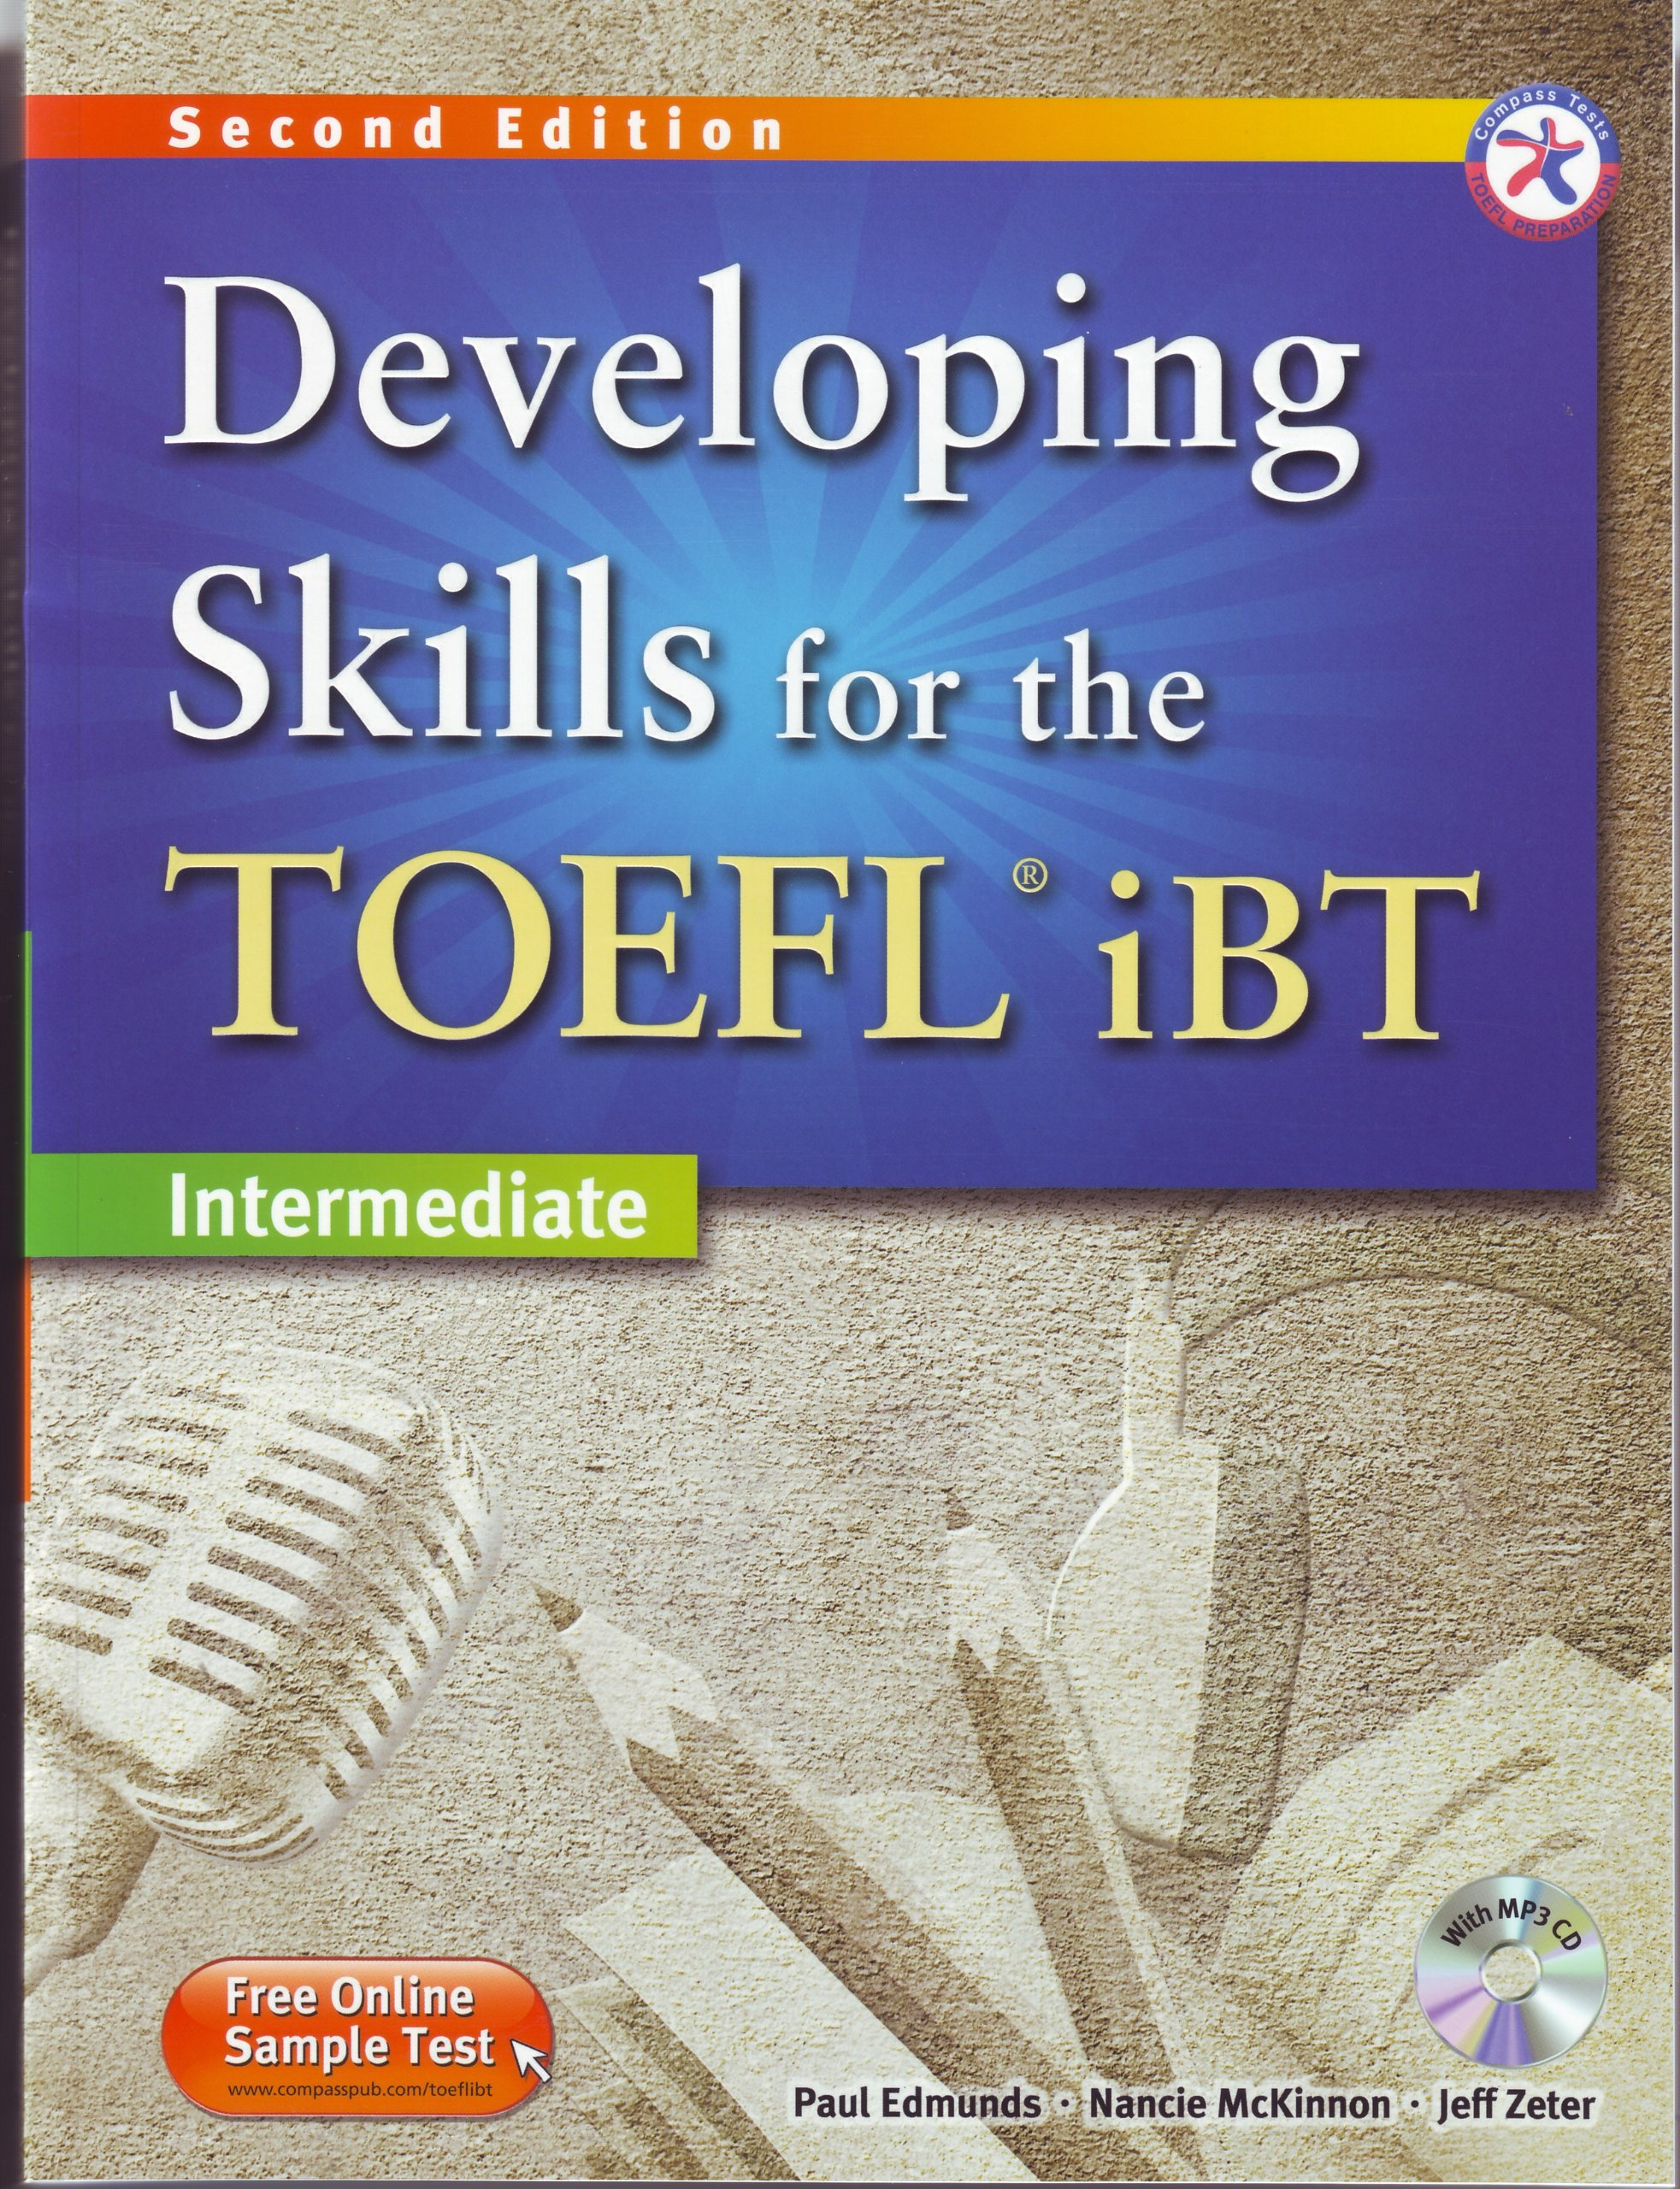 Developing Skills for the TOEFL iBT, 2nd Edition Intermediate Combined Book & MP3 CD by Compass Publishing